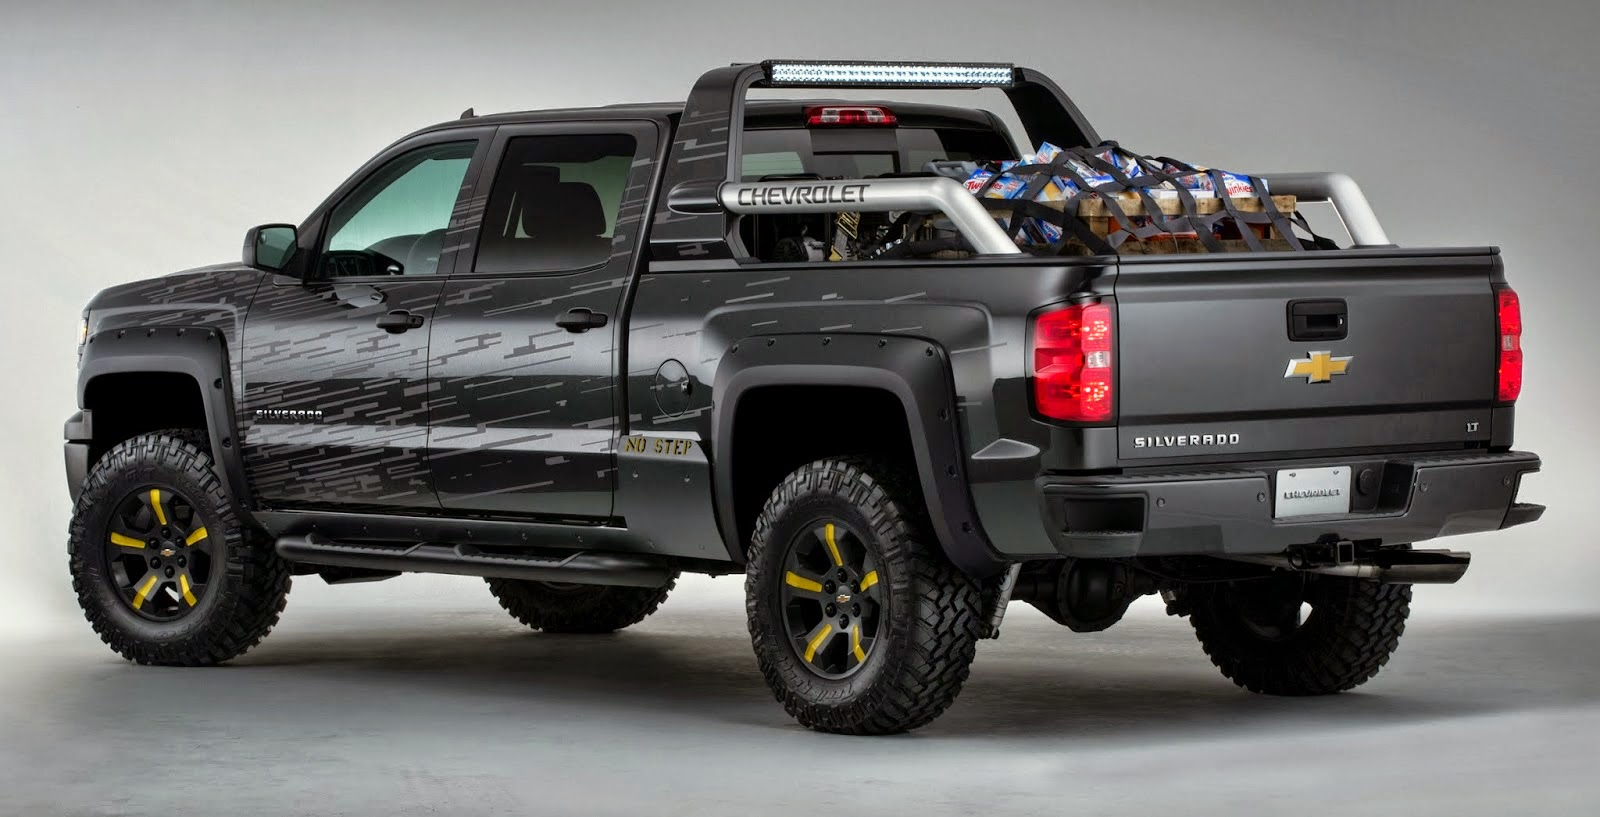 2014 chevy silverado black ops edition html car review specs price